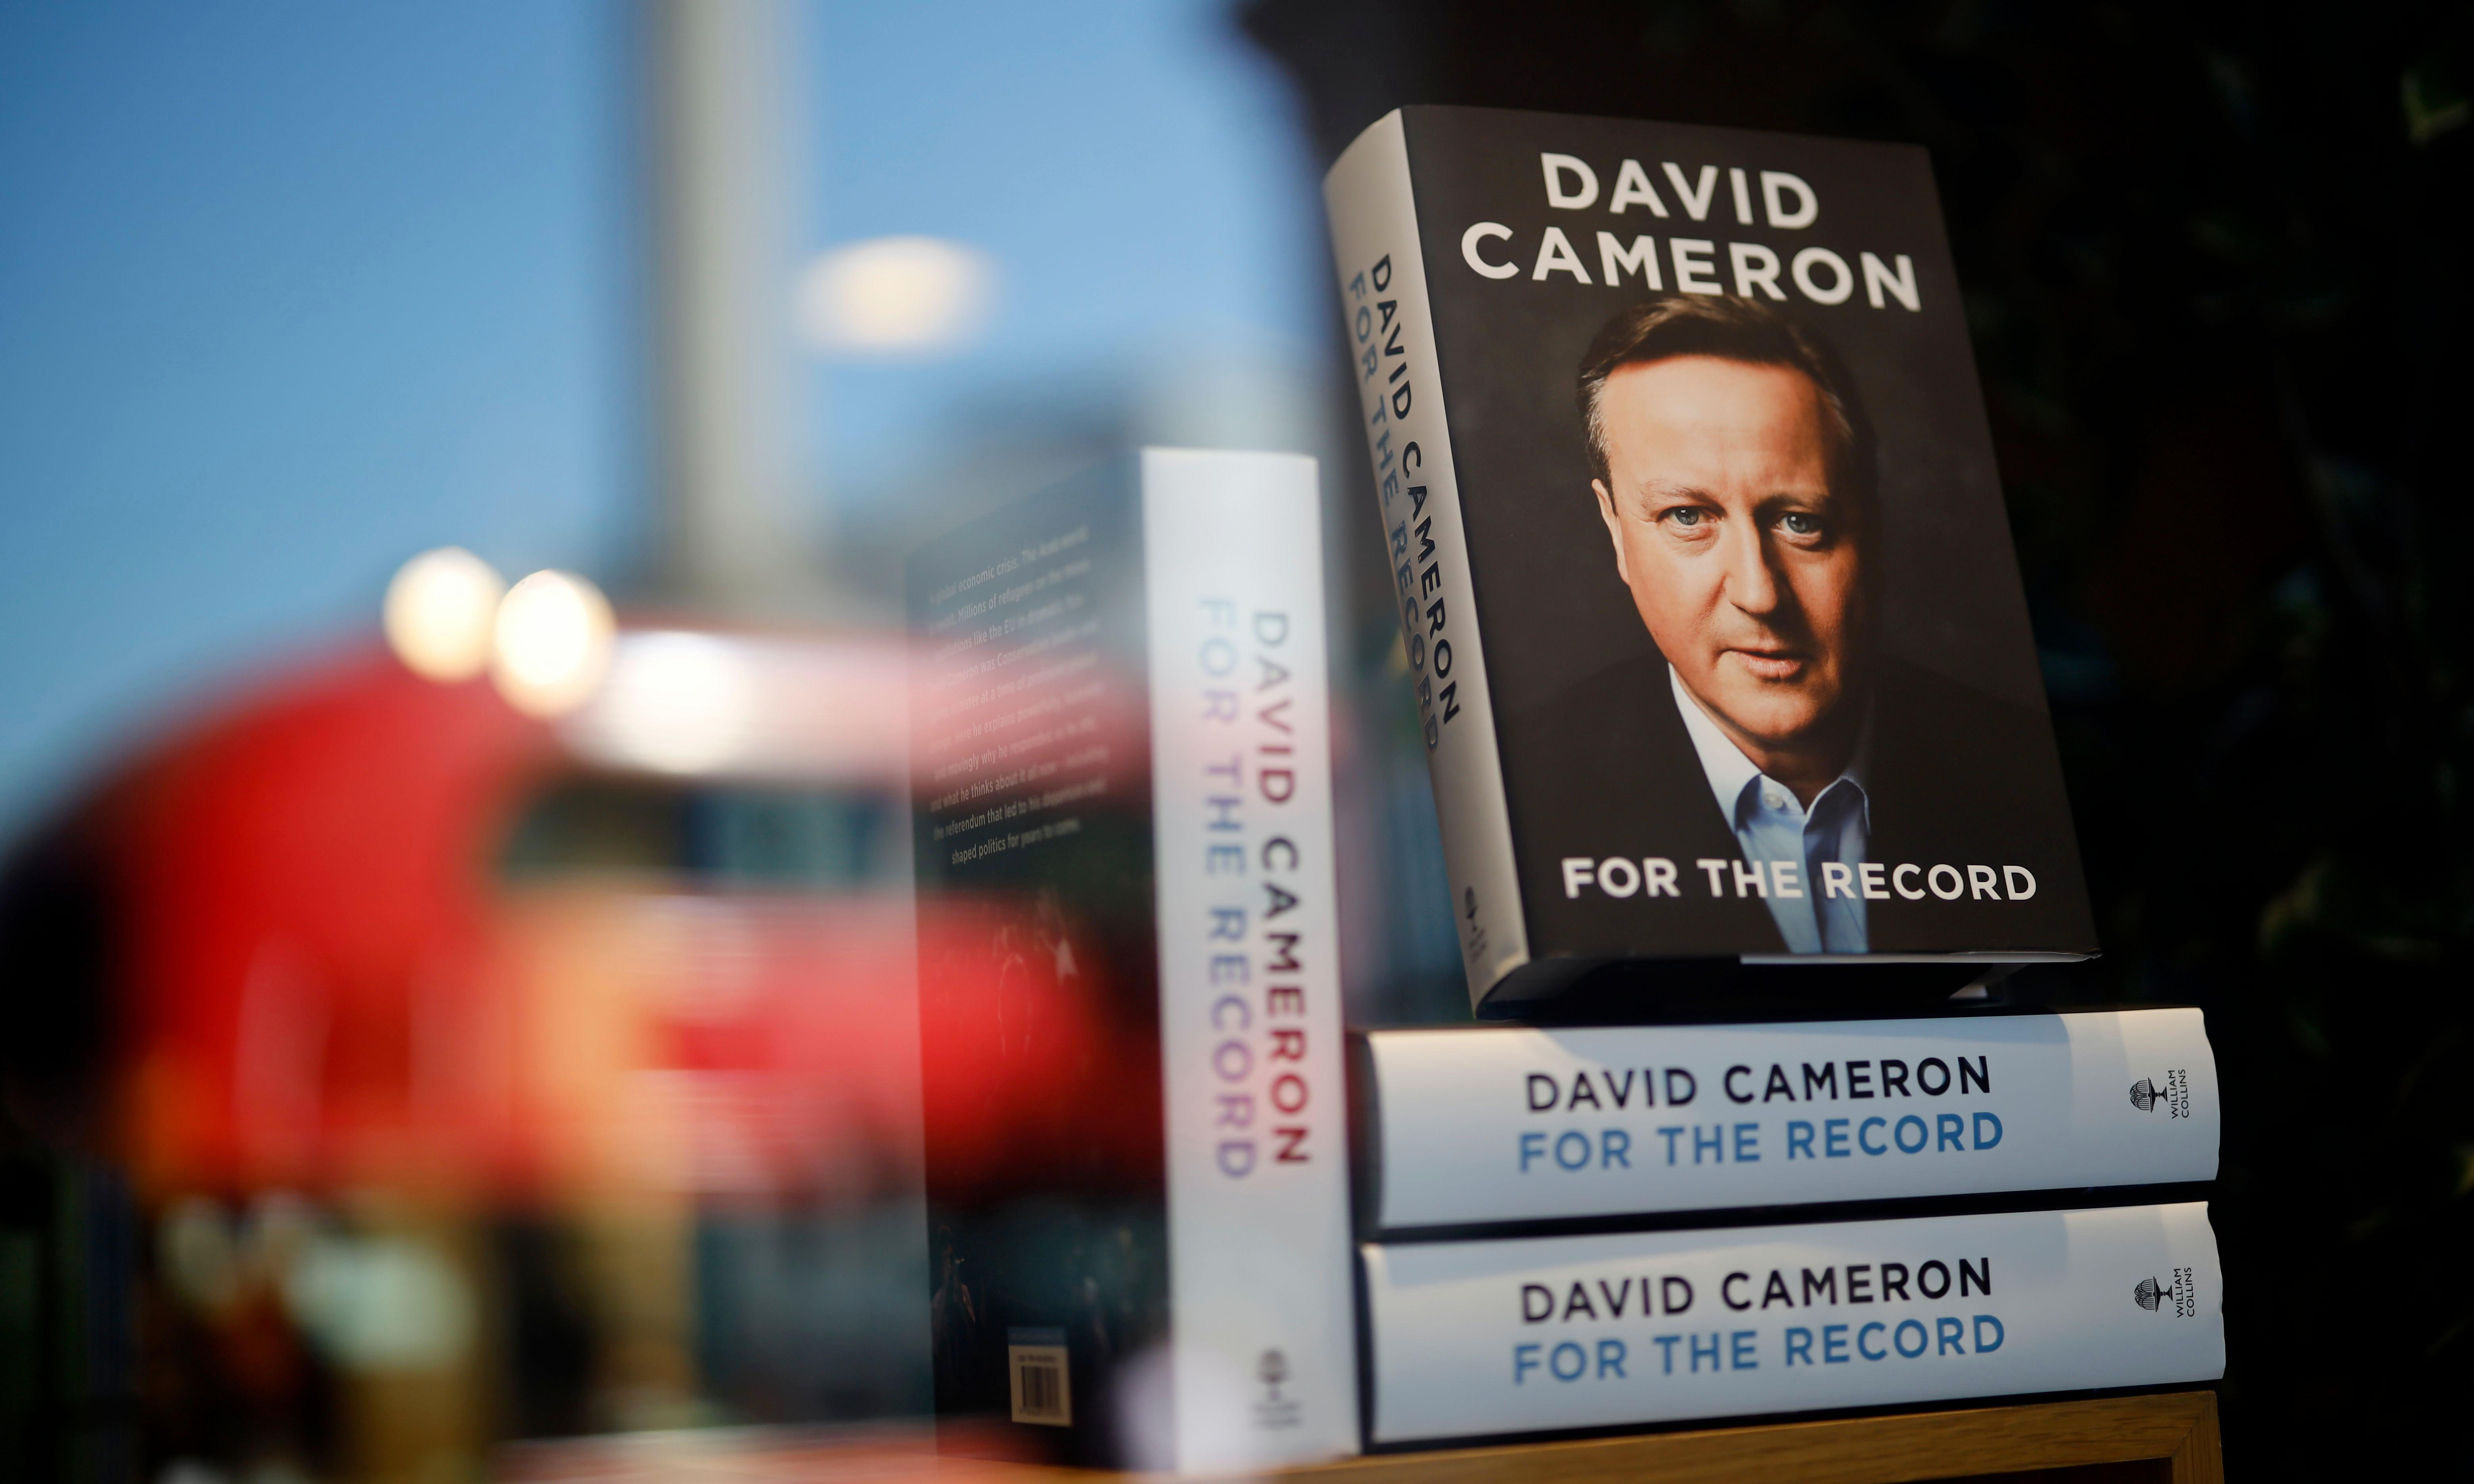 'Animals feared him': fake David Cameron memoir cover spotted in bookshop